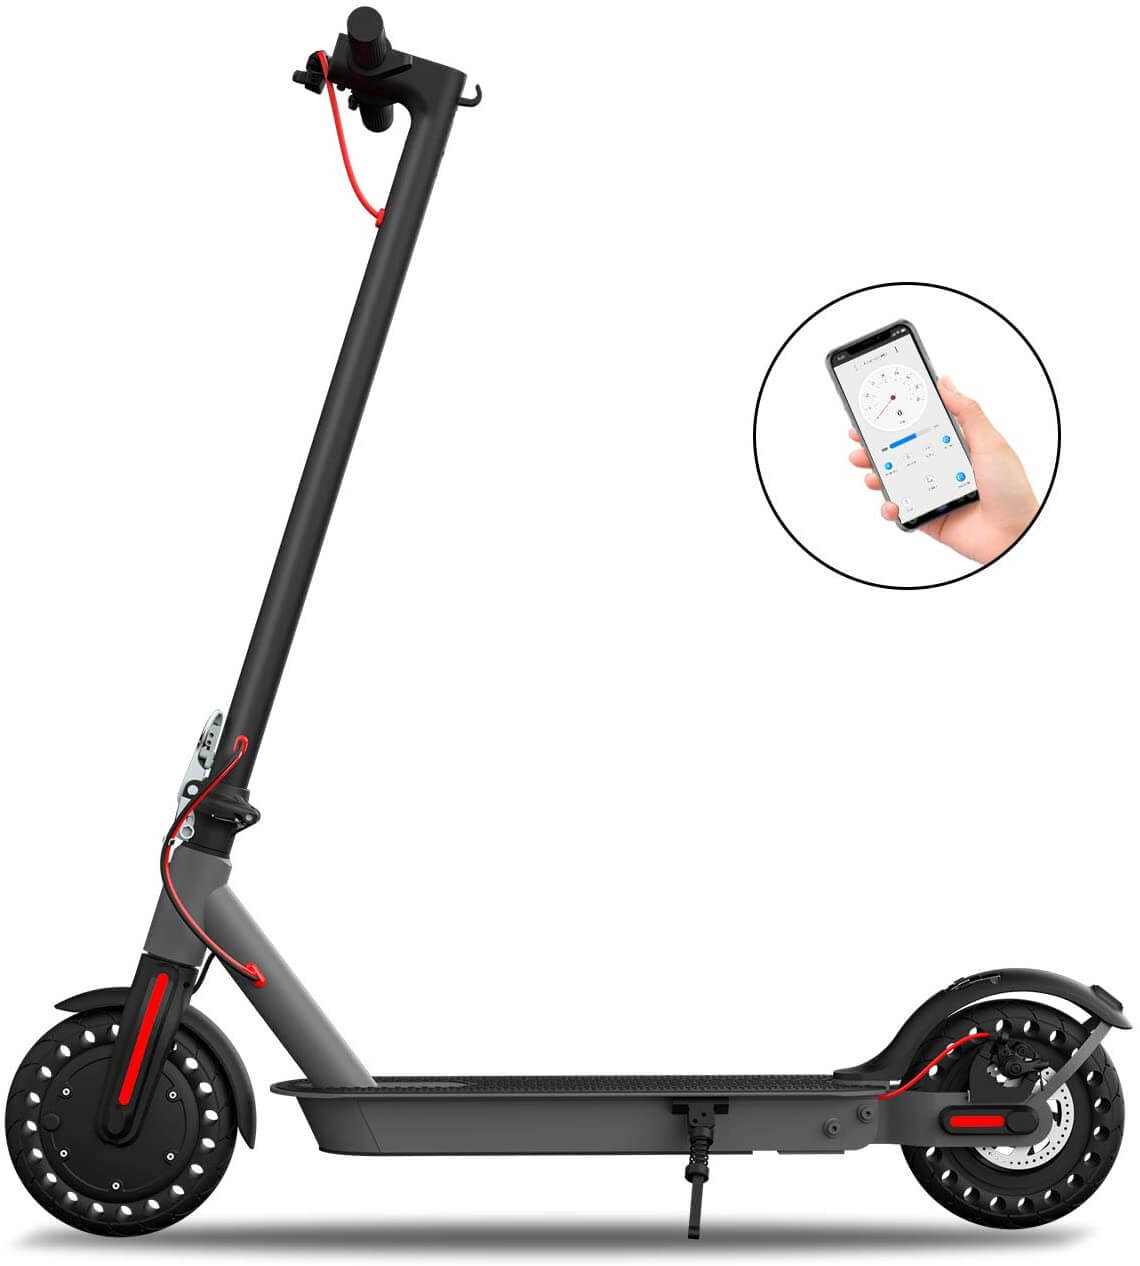 Hiboy-S2-Electric-Scooter-for-Climbing-Hills